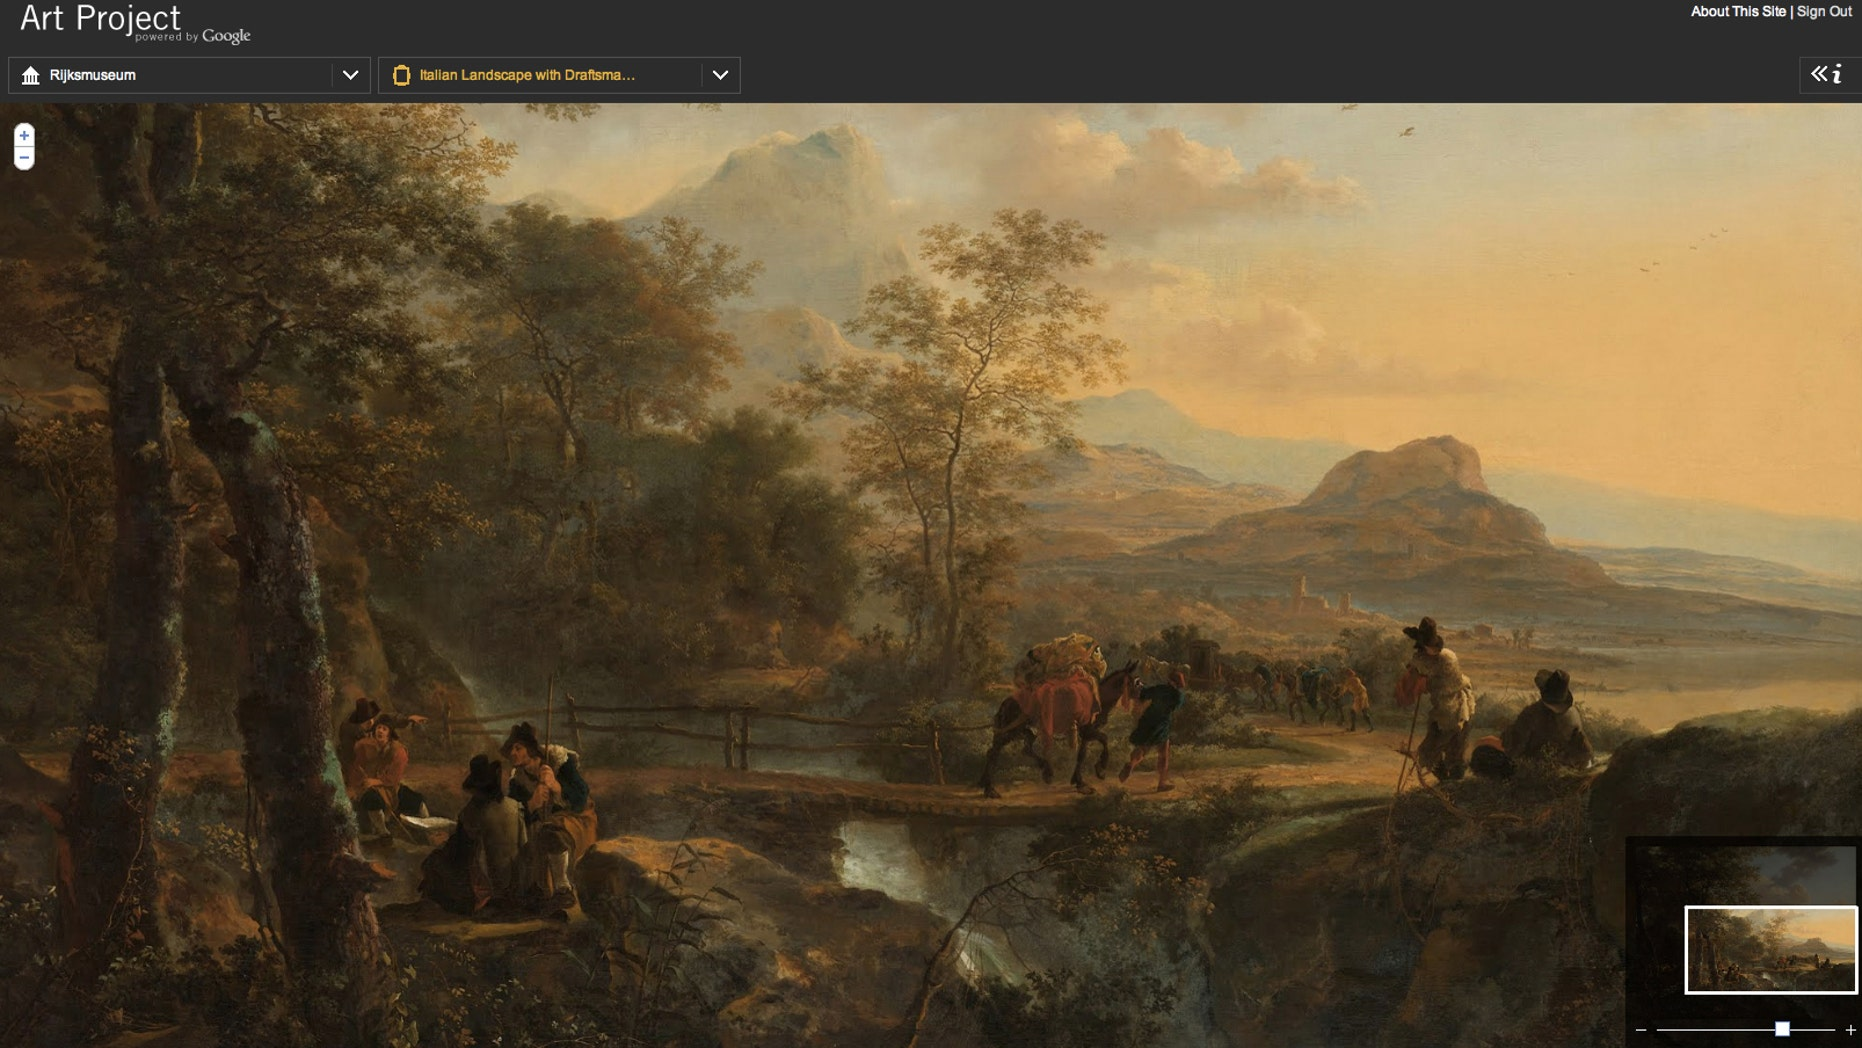 A Rembrandt painting, one of many made available by Amsterdam's Rijksmuseum, thanks to a new Google project.